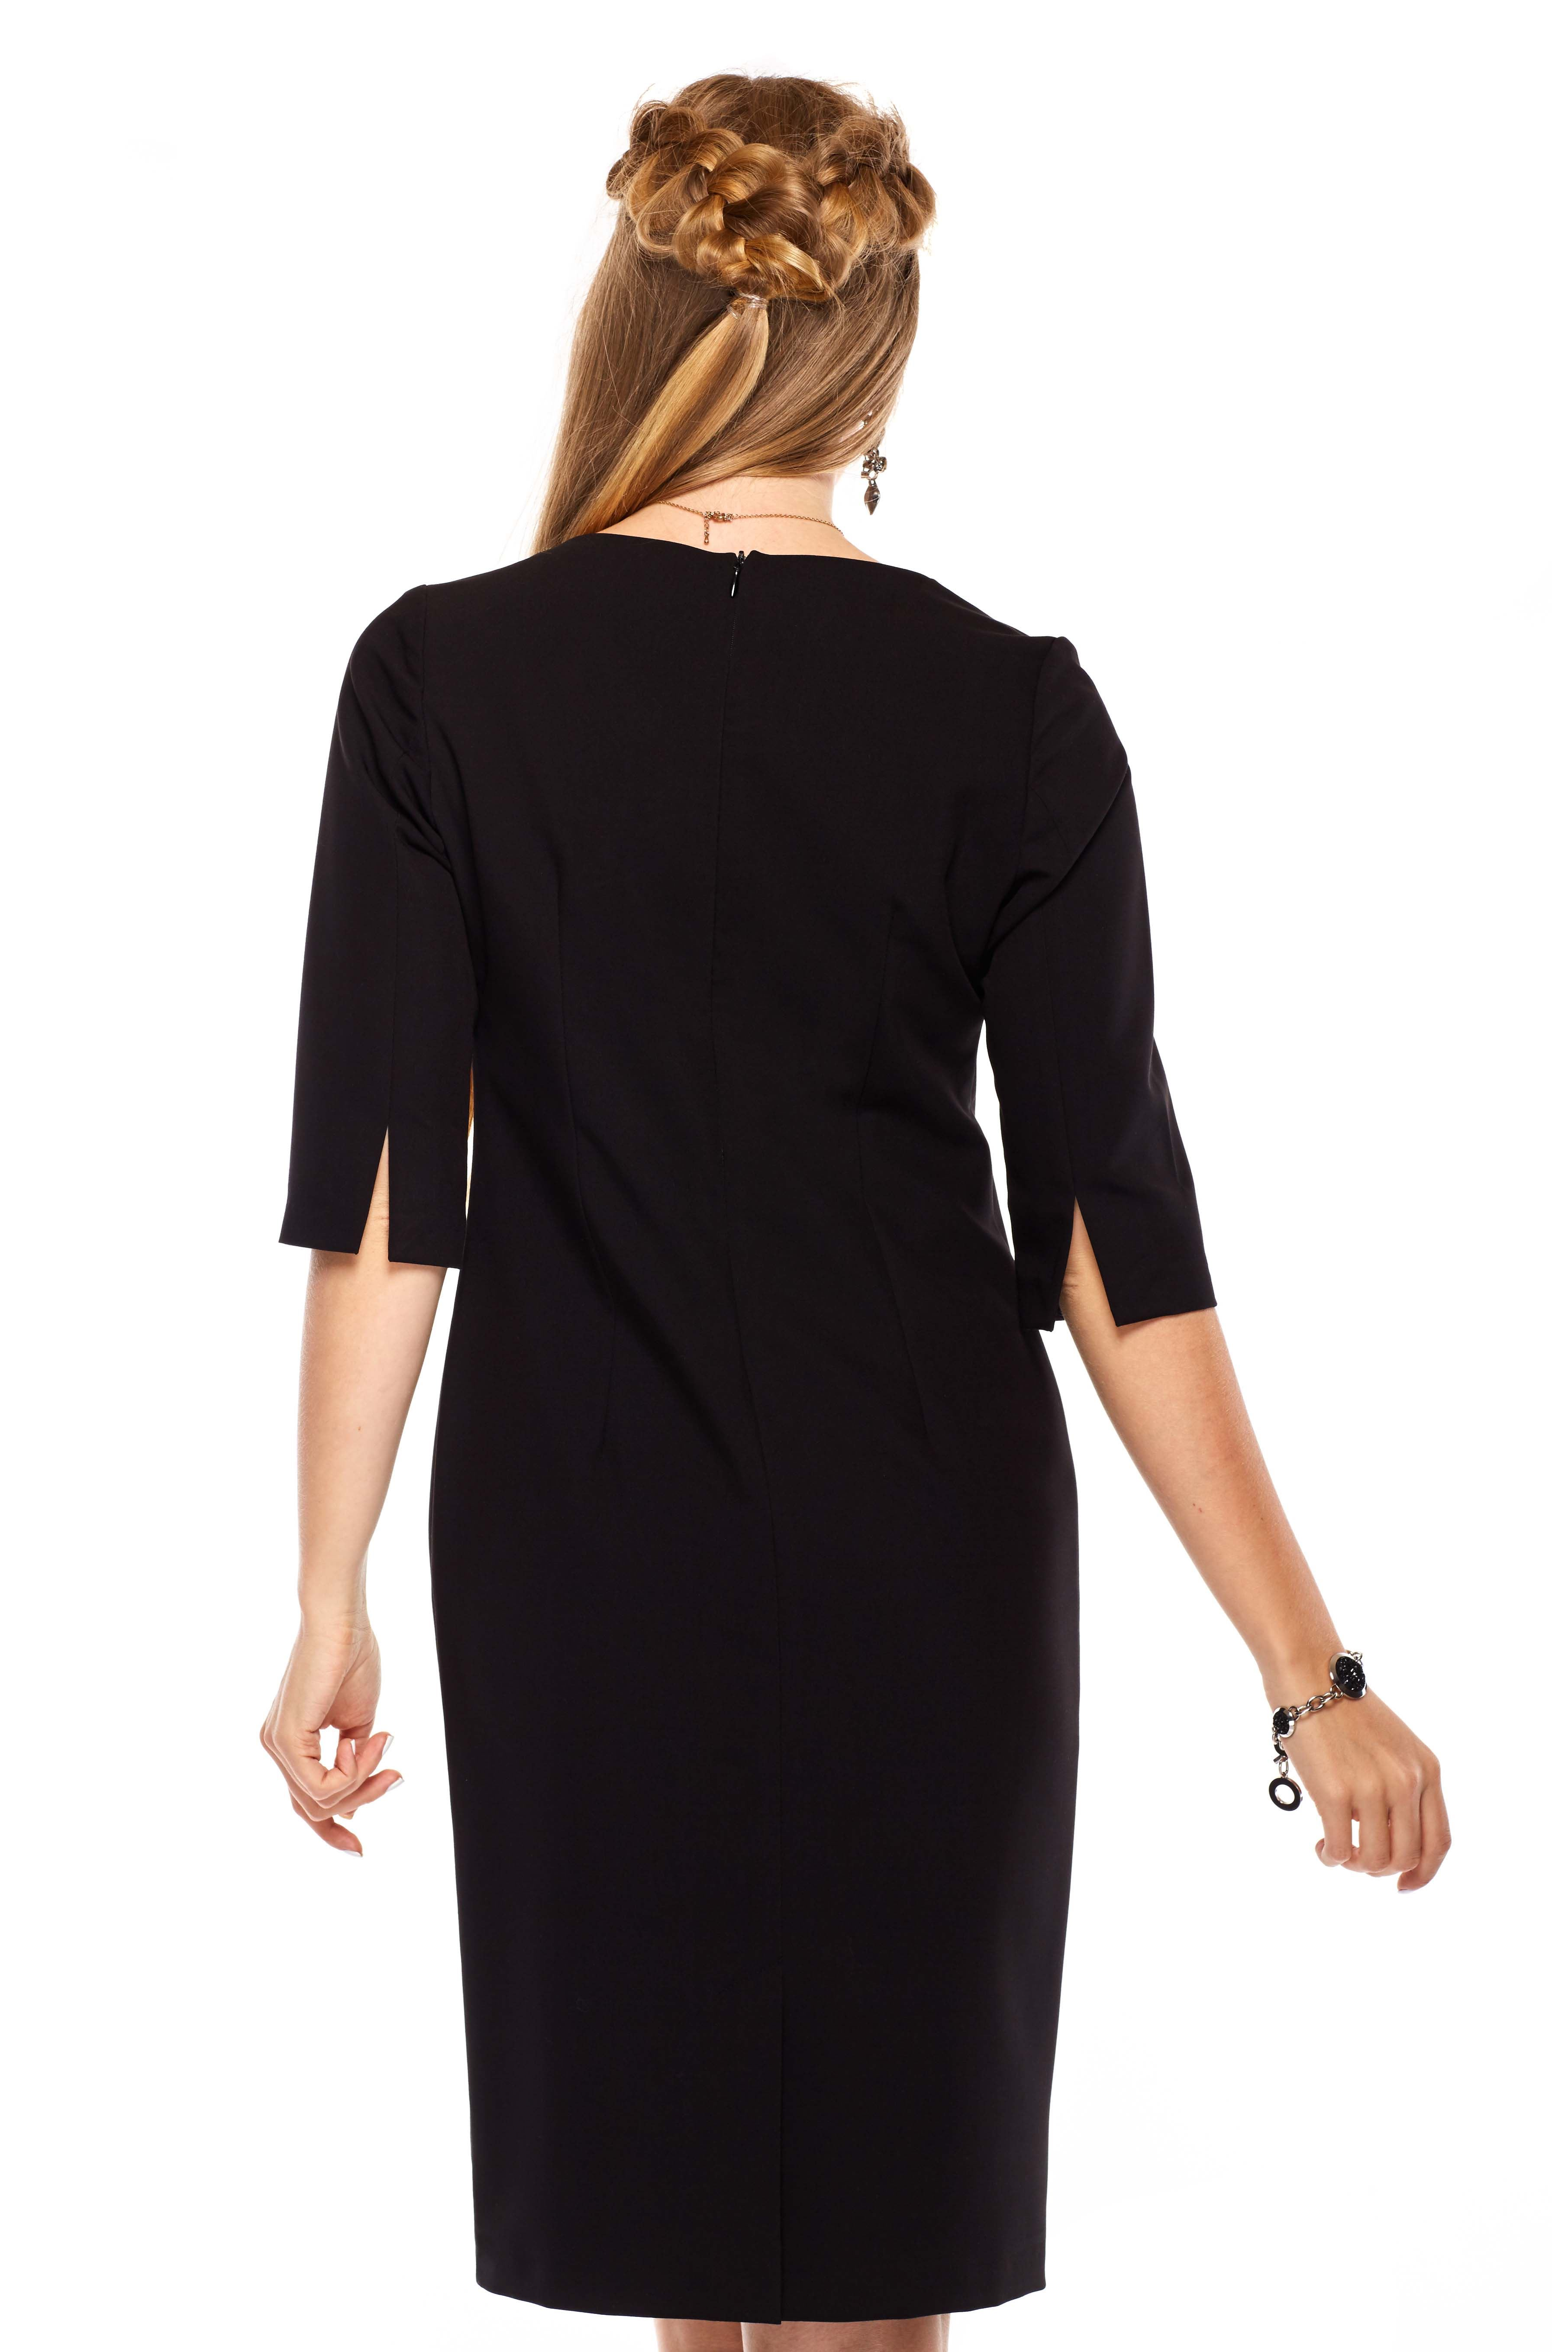 Inga dress in black